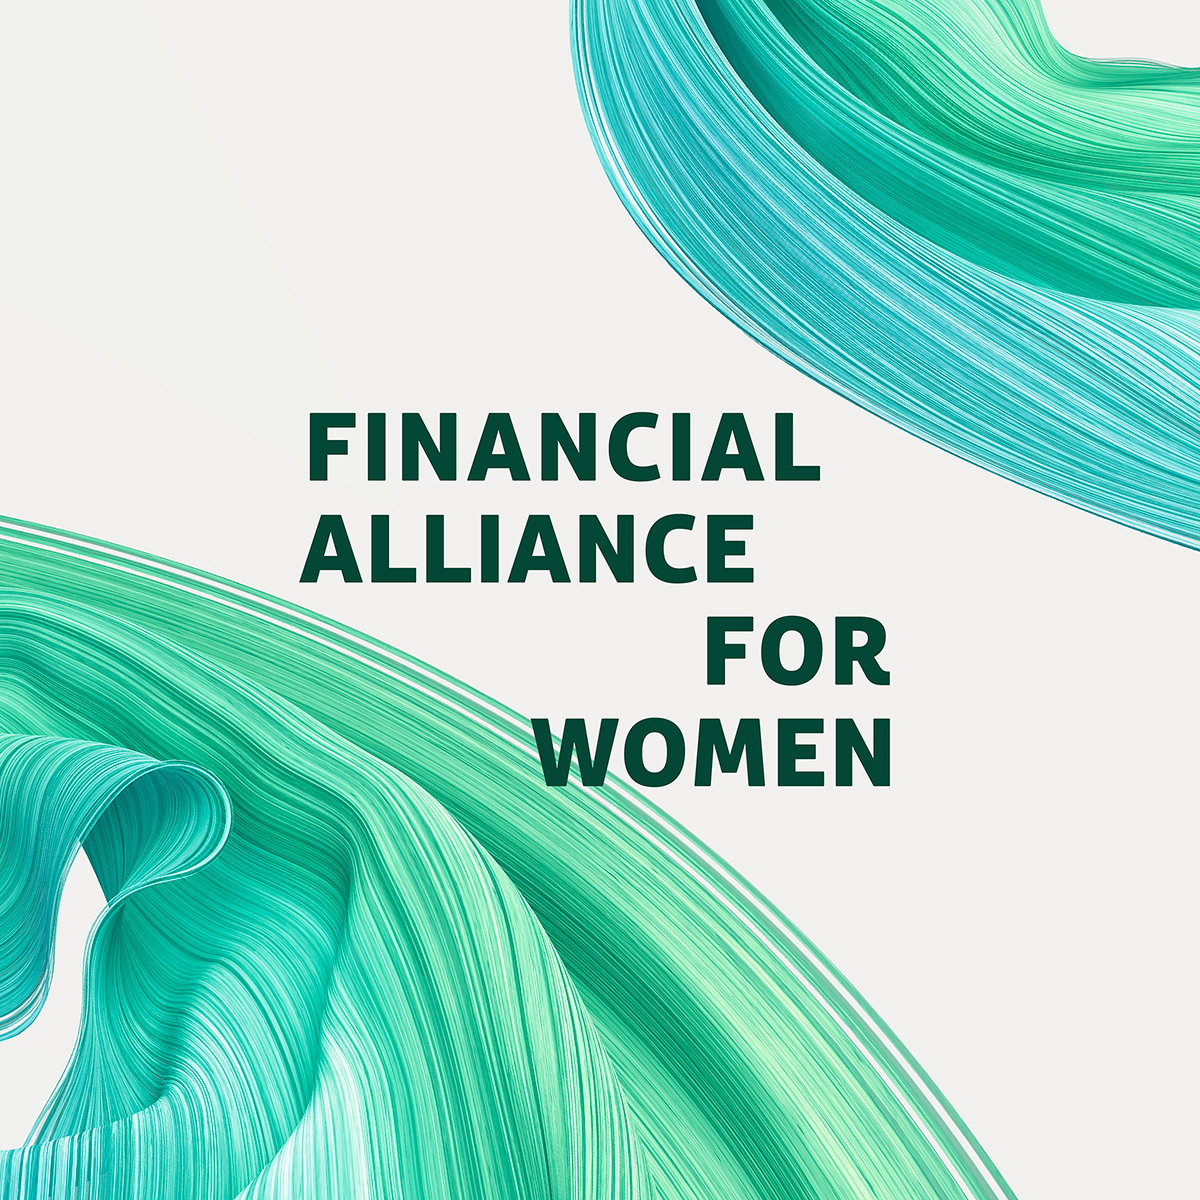 Design Bridge New York Transforms Identity of Financial Alliance for Women